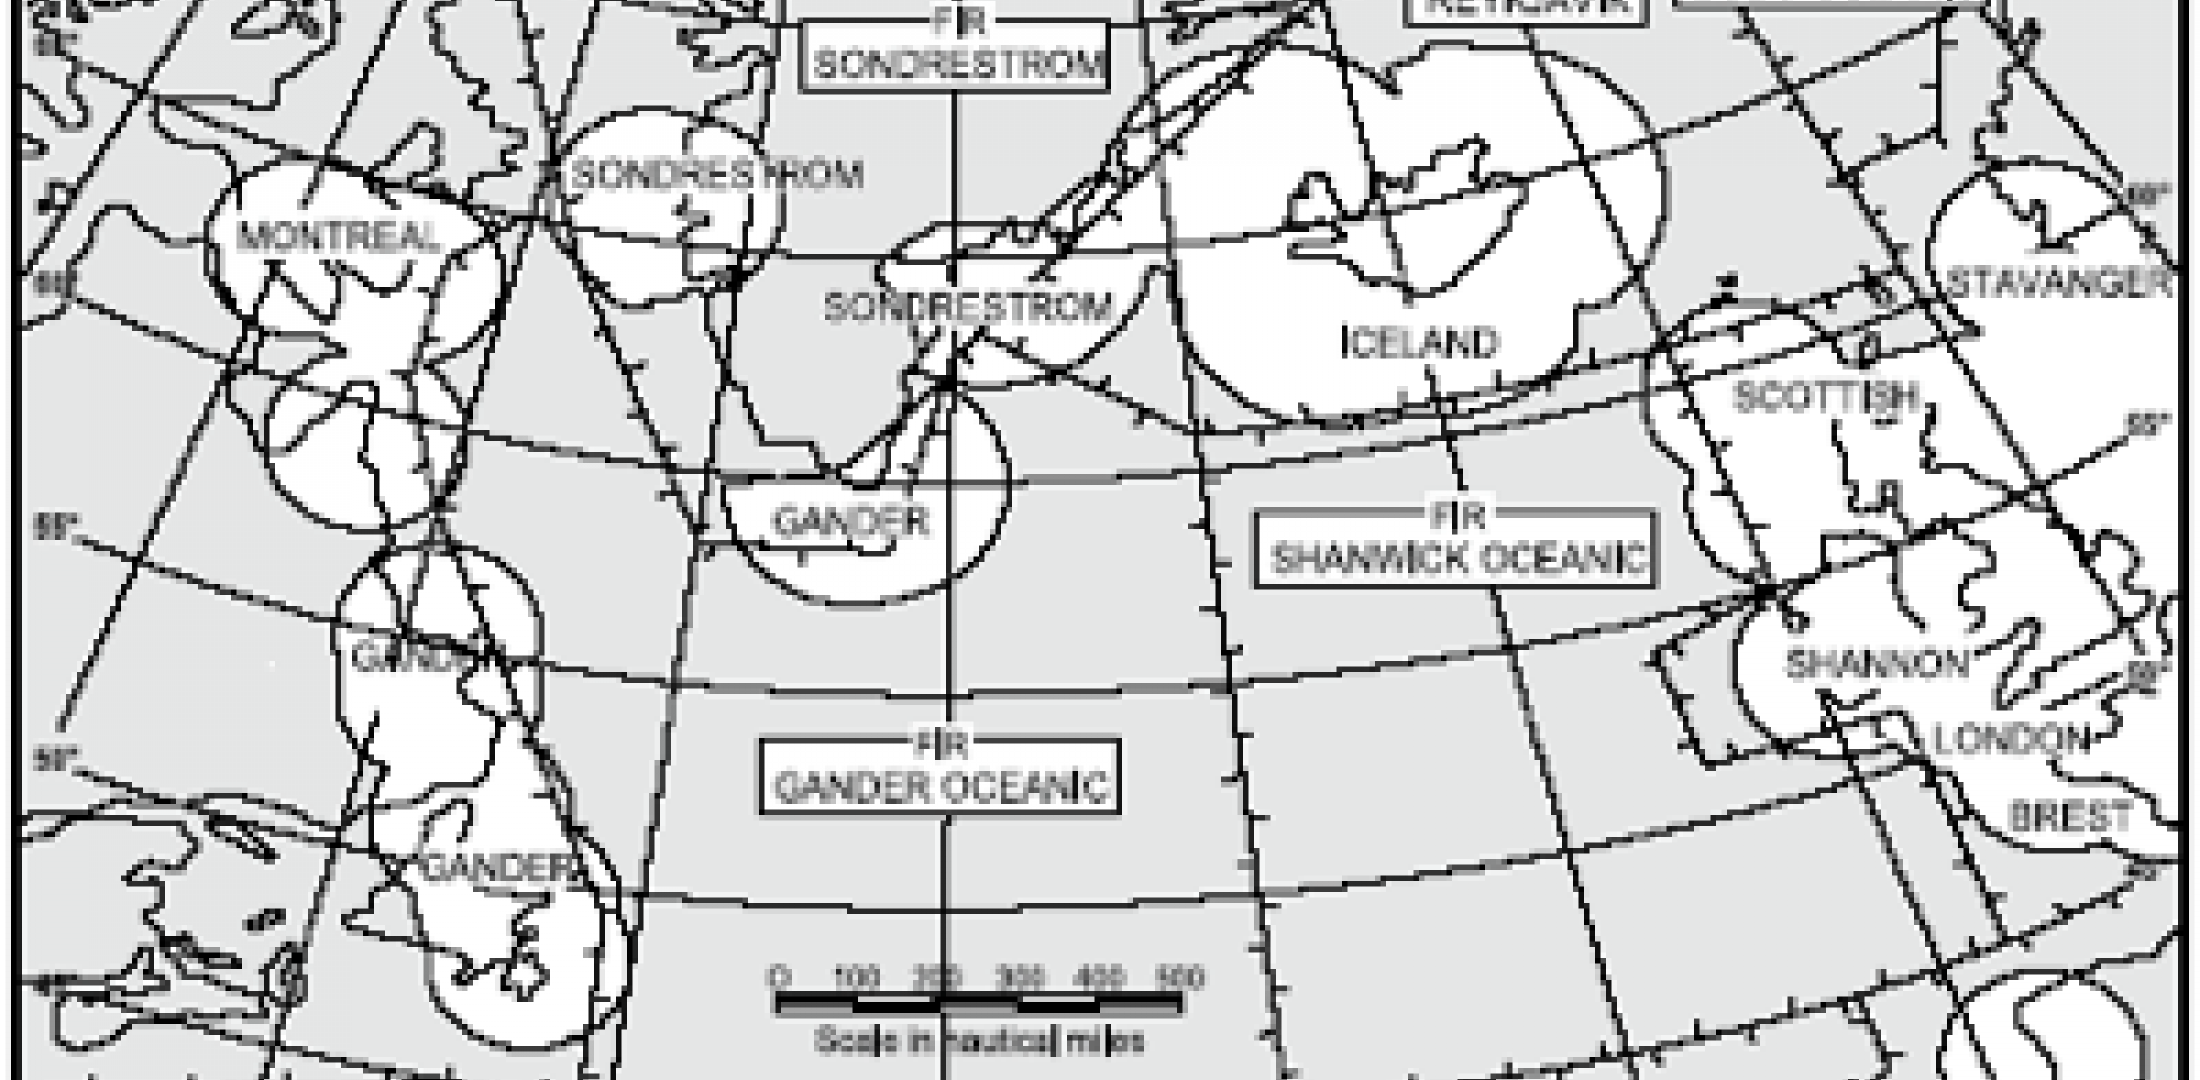 VHF coverage, North Atlantic, 10,000 feet